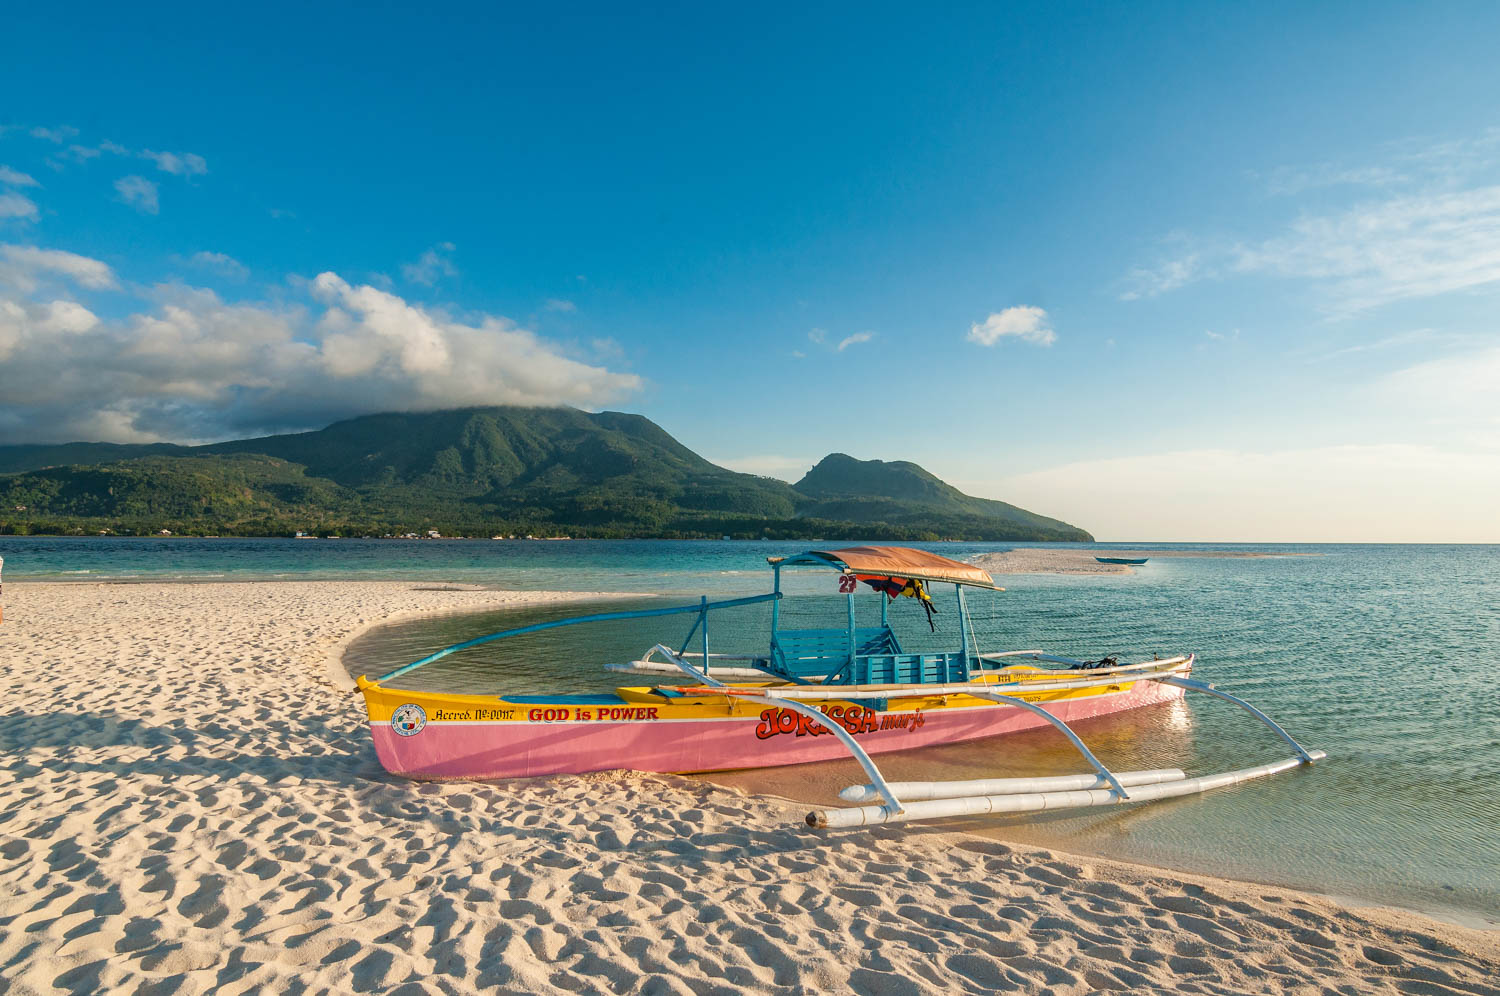 A Local's Guide to Camiguin Island, One of the Philippines' Best Kept Secrets